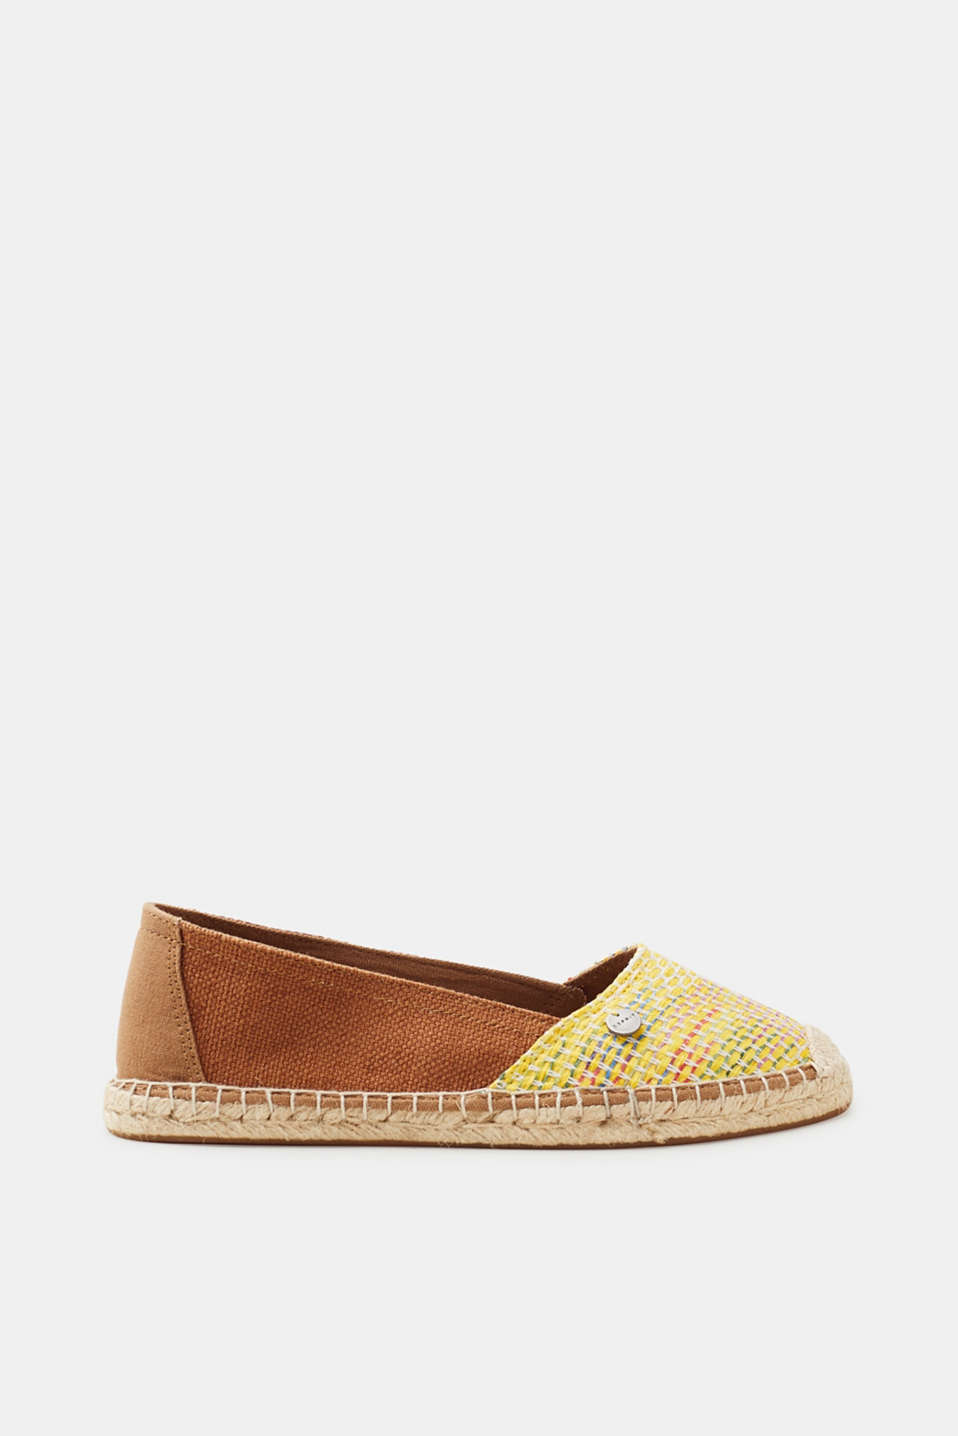 Esprit - Brightly coloured woven espadrilles